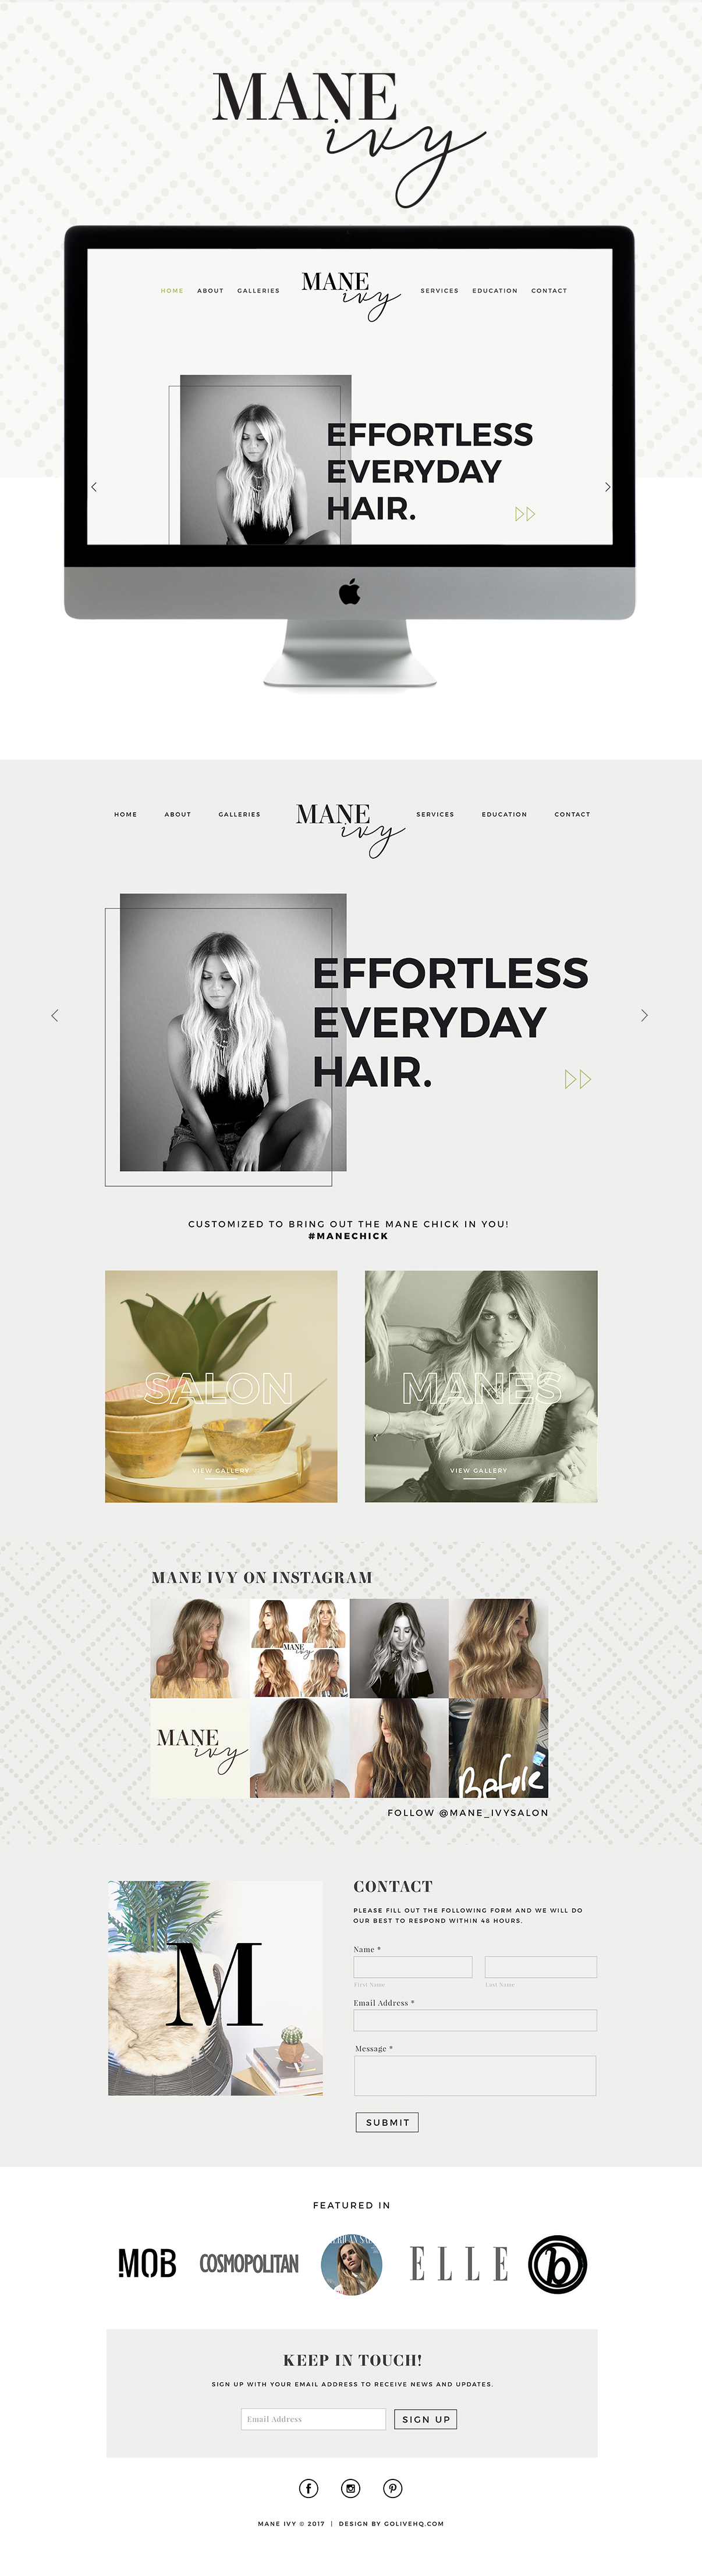 Fun-loving & boho yet high end, chill & clean Squarespace website design | designed by: golivehq.co